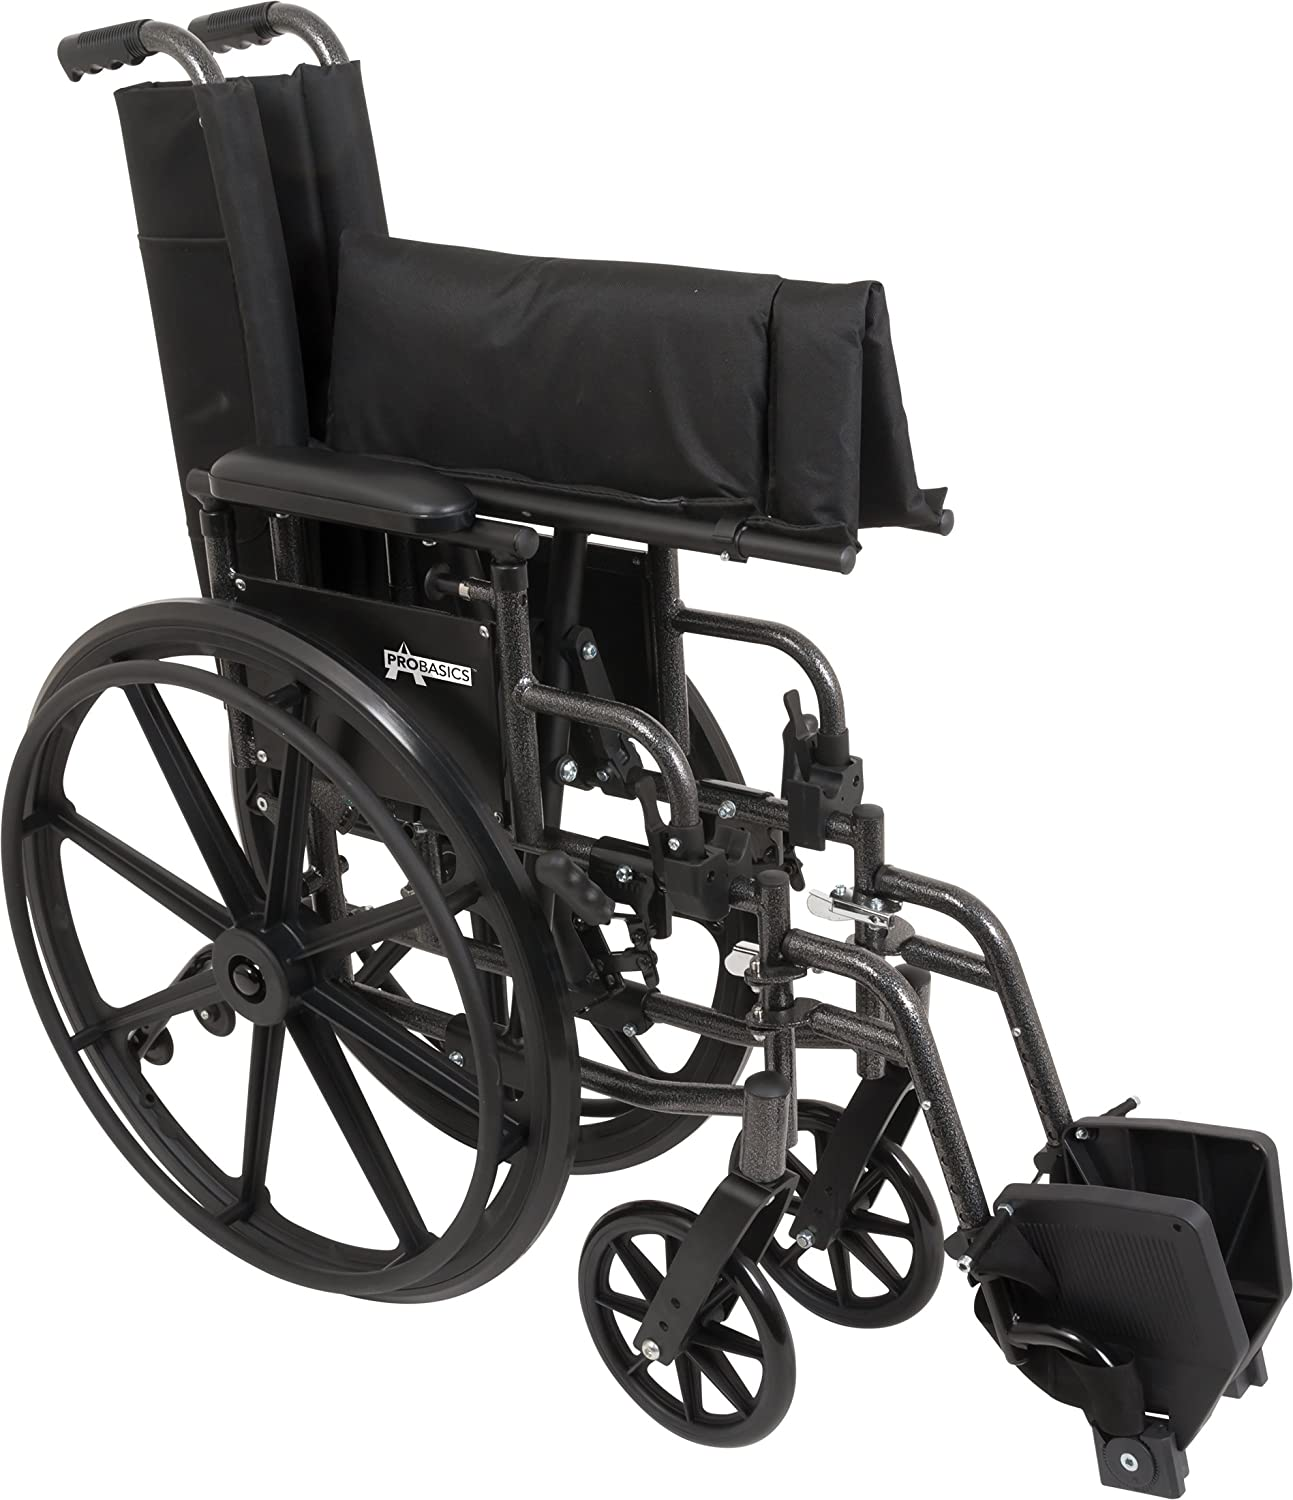 """ProBasics Ultra Lightweight Wheelchair for Adults - Height Adjustable Seat - Flip Back Heaight Adjustable Desk Arms - Swing-Away Foot Rest, 20"""" x 16"""" Seat: Industrial & Scientific"""